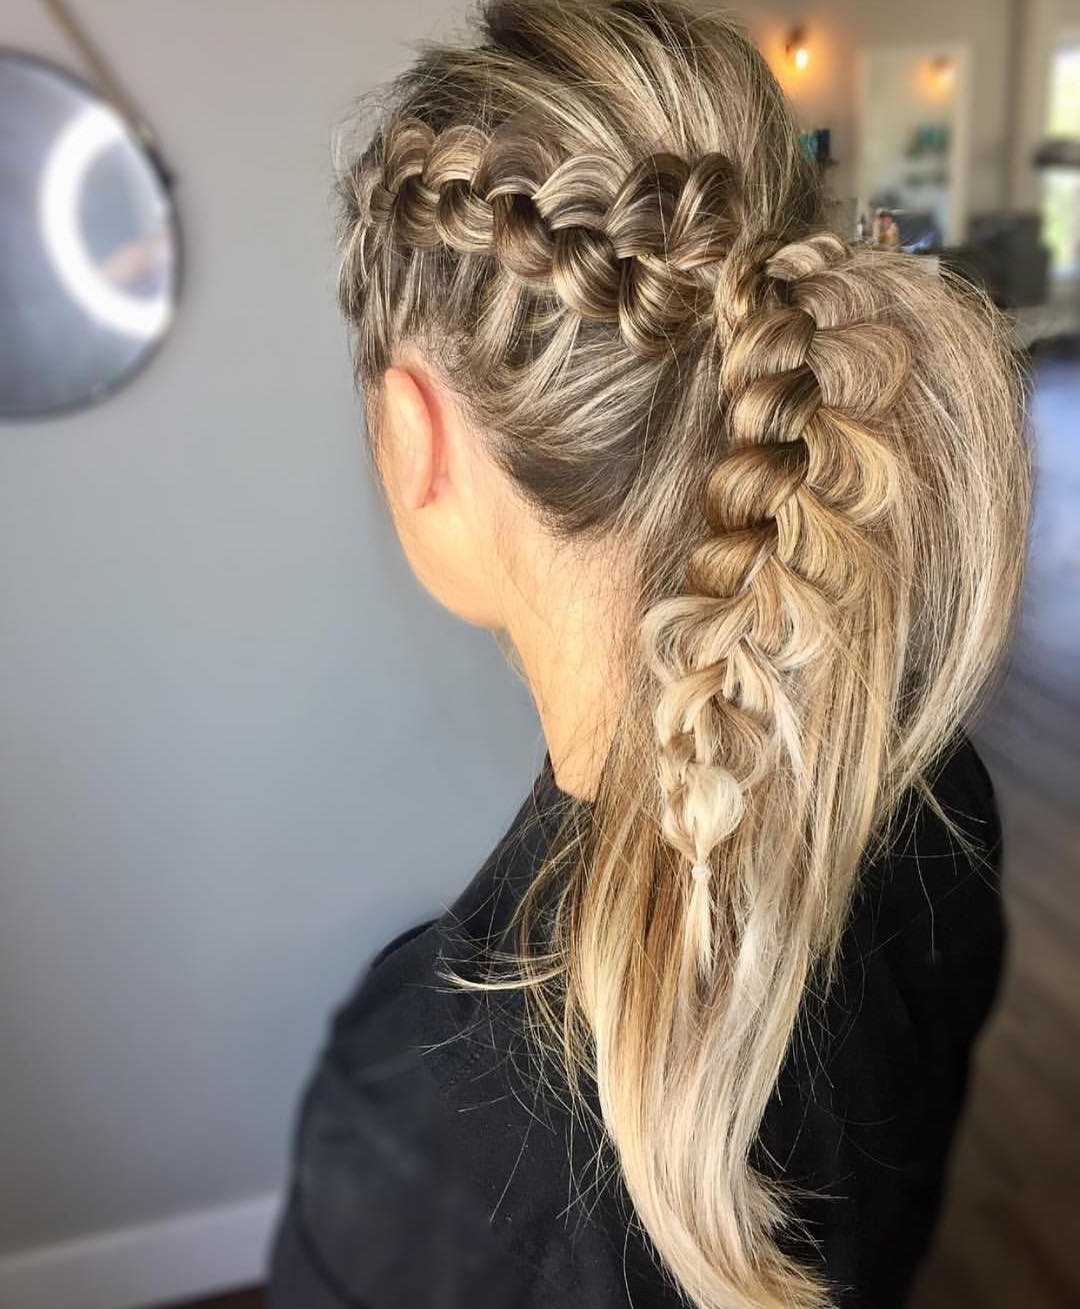 Newest Curvy Braid Hairstyles And Long Tails In 10 Ultra Ponytail Braided Hairstyles For Long Hair; Parties (View 4 of 20)